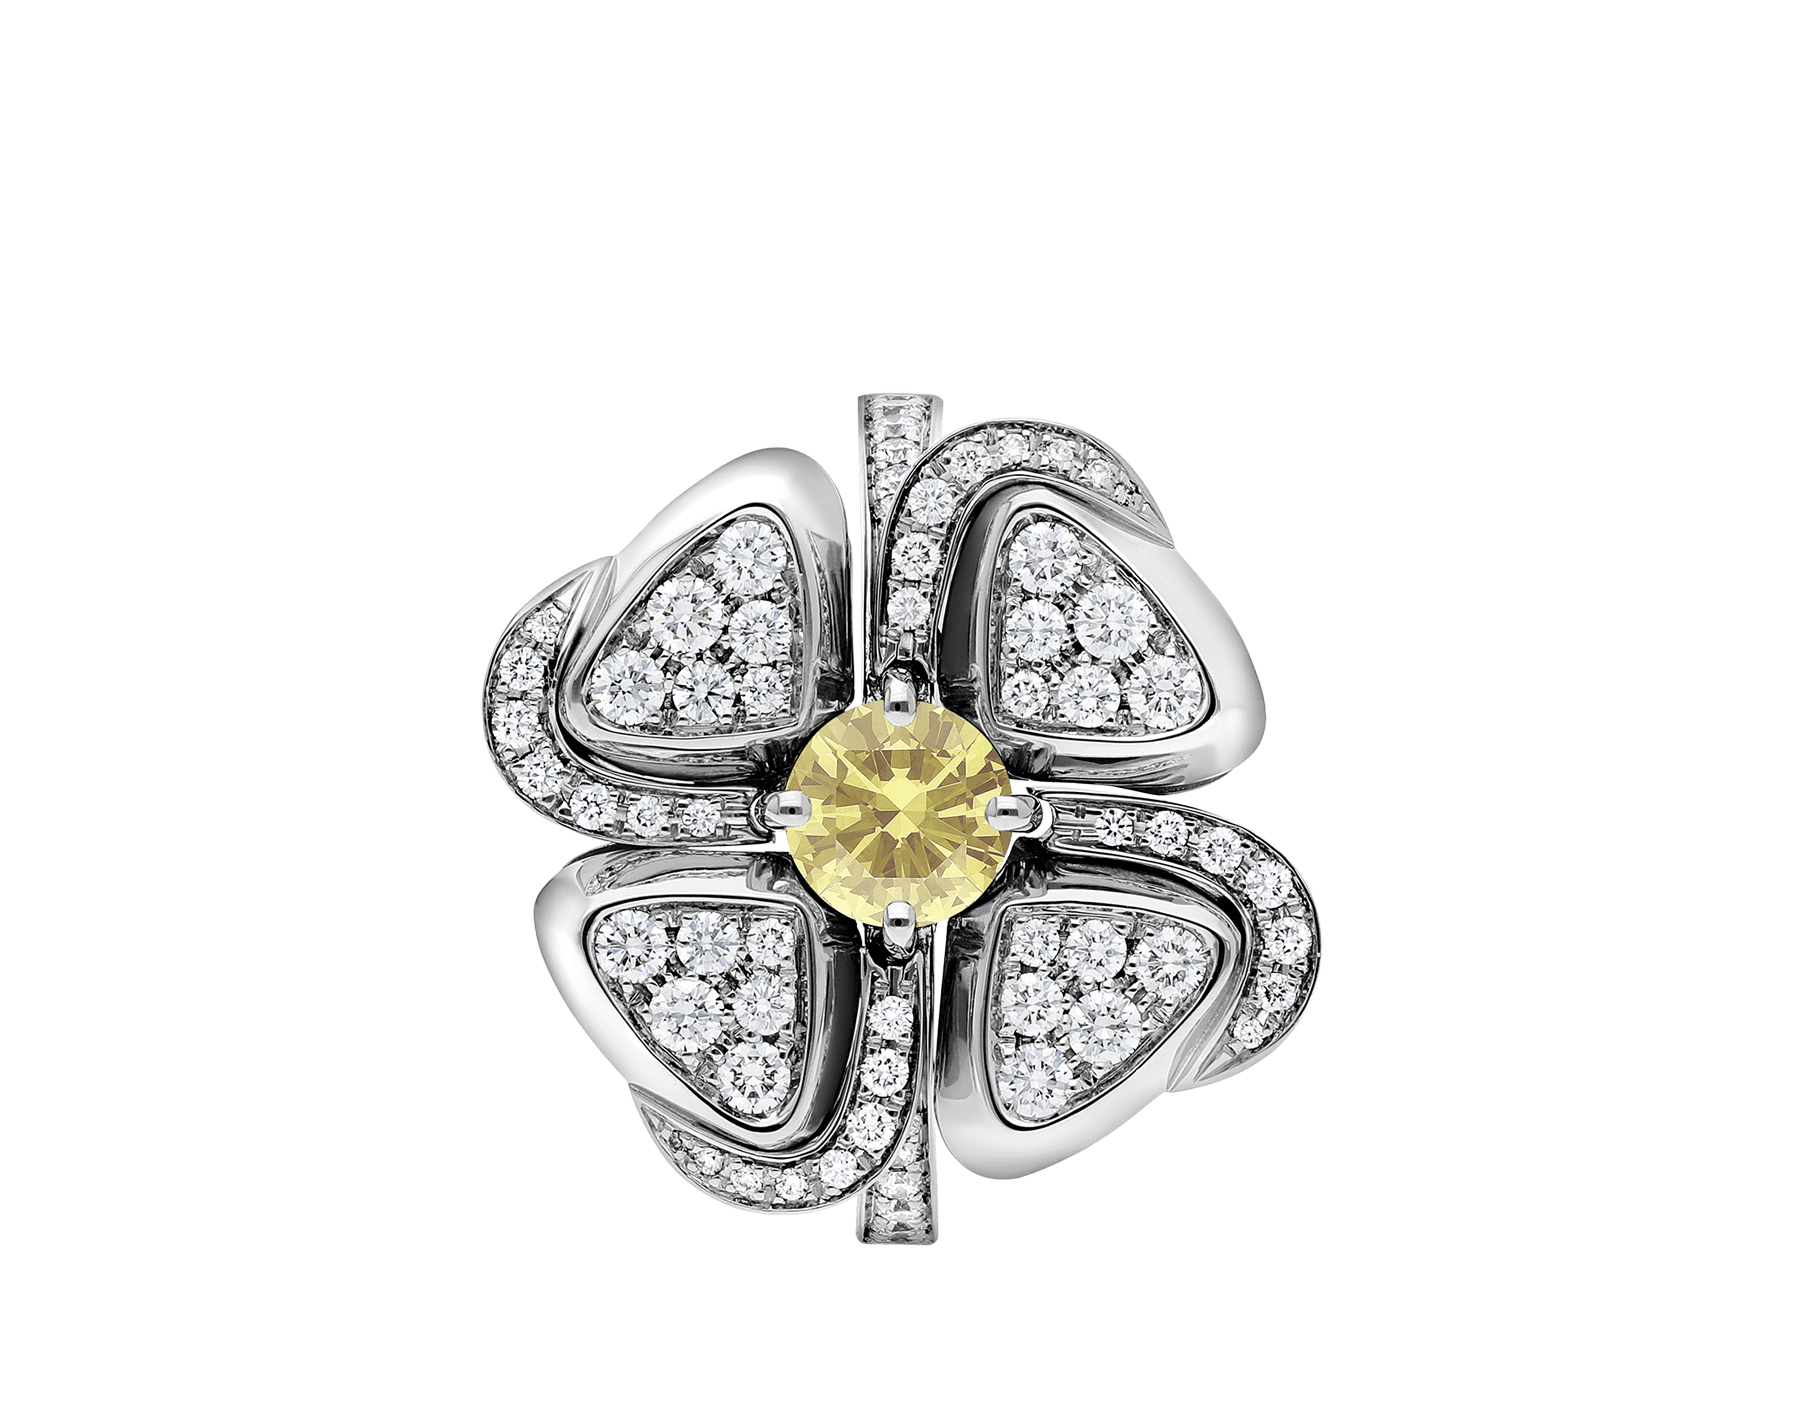 Fiorever 18 kt white gold ring set with one central yellow diamond (0.30 ct) and pavé diamonds AN858908 image 2